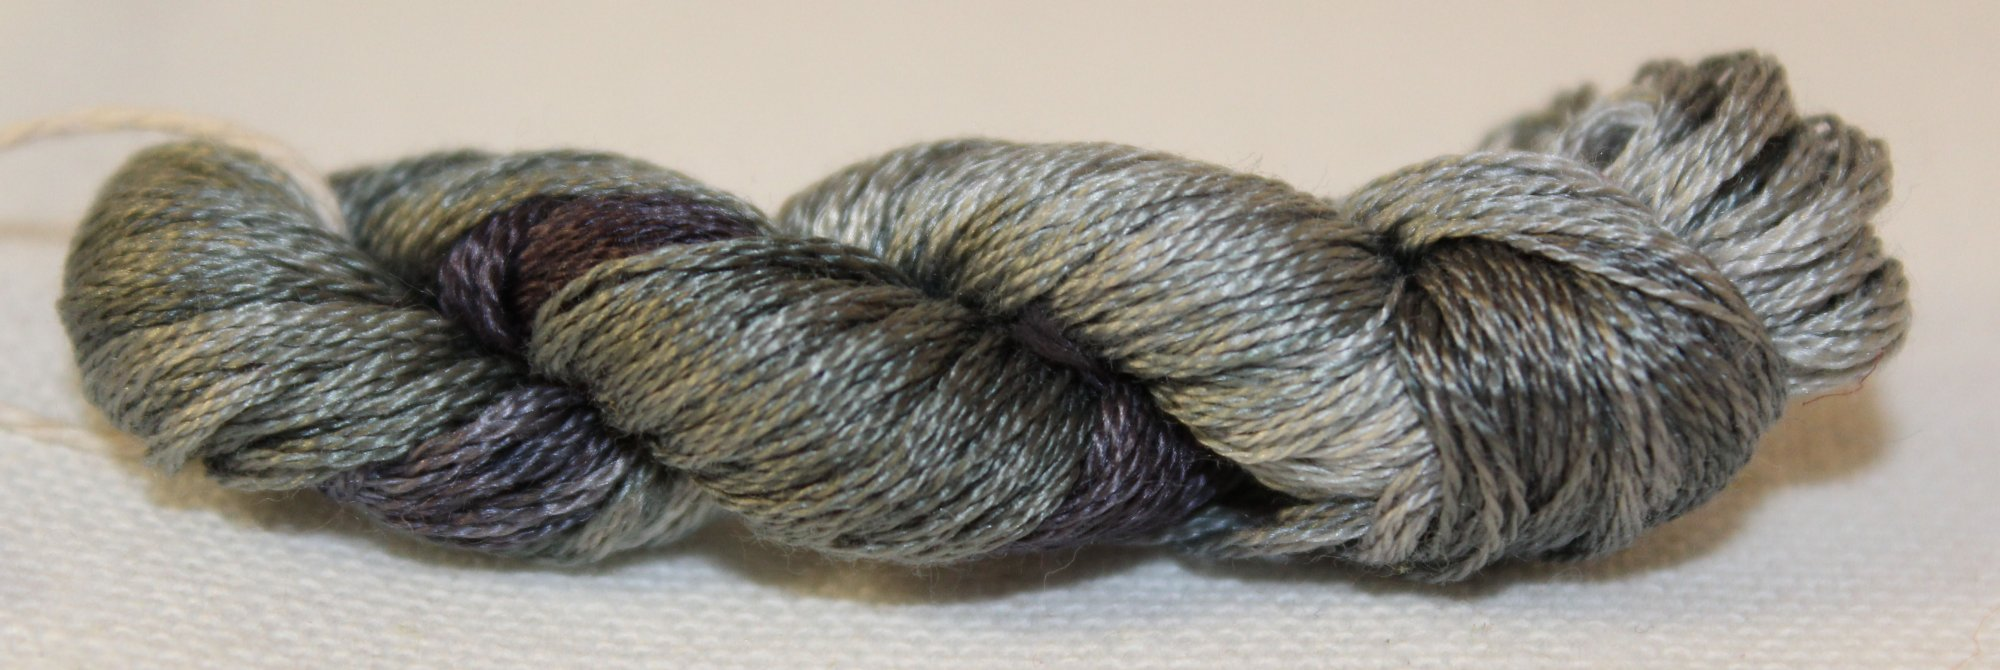 Steely Nights- Hand-Dyed Embroidery Floss